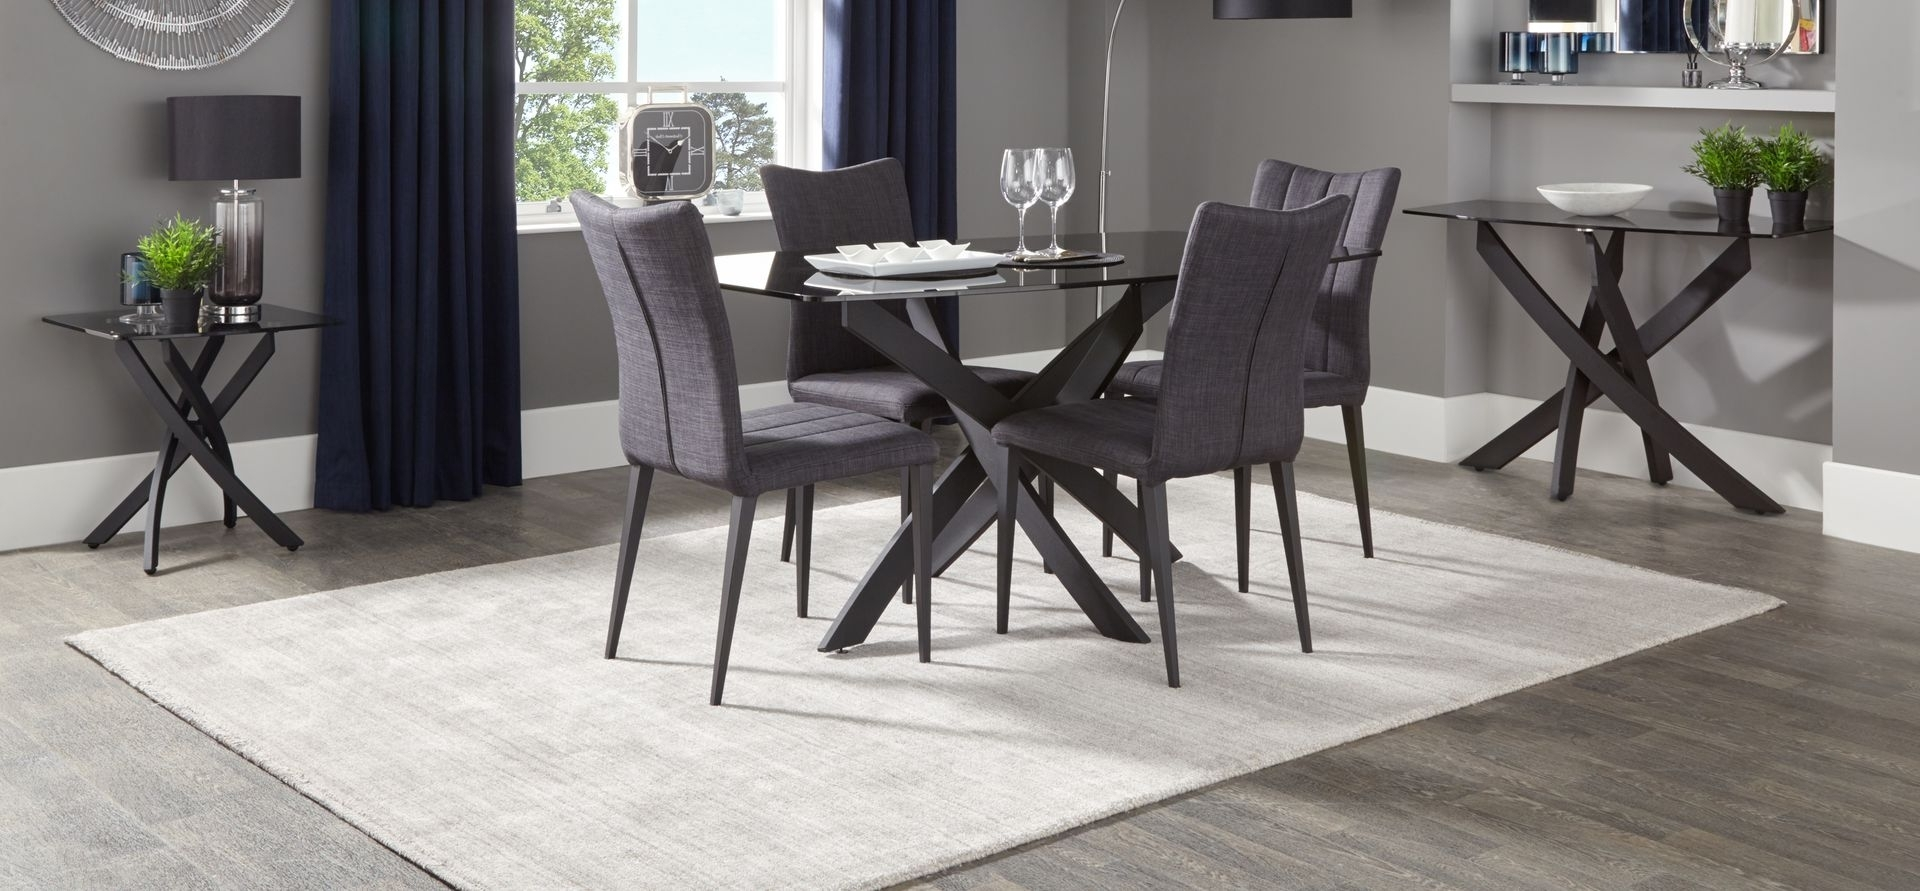 Scs Dining Room Furniture – Cheekybeaglestudios Throughout Latest Scs Dining Tables (View 17 of 25)